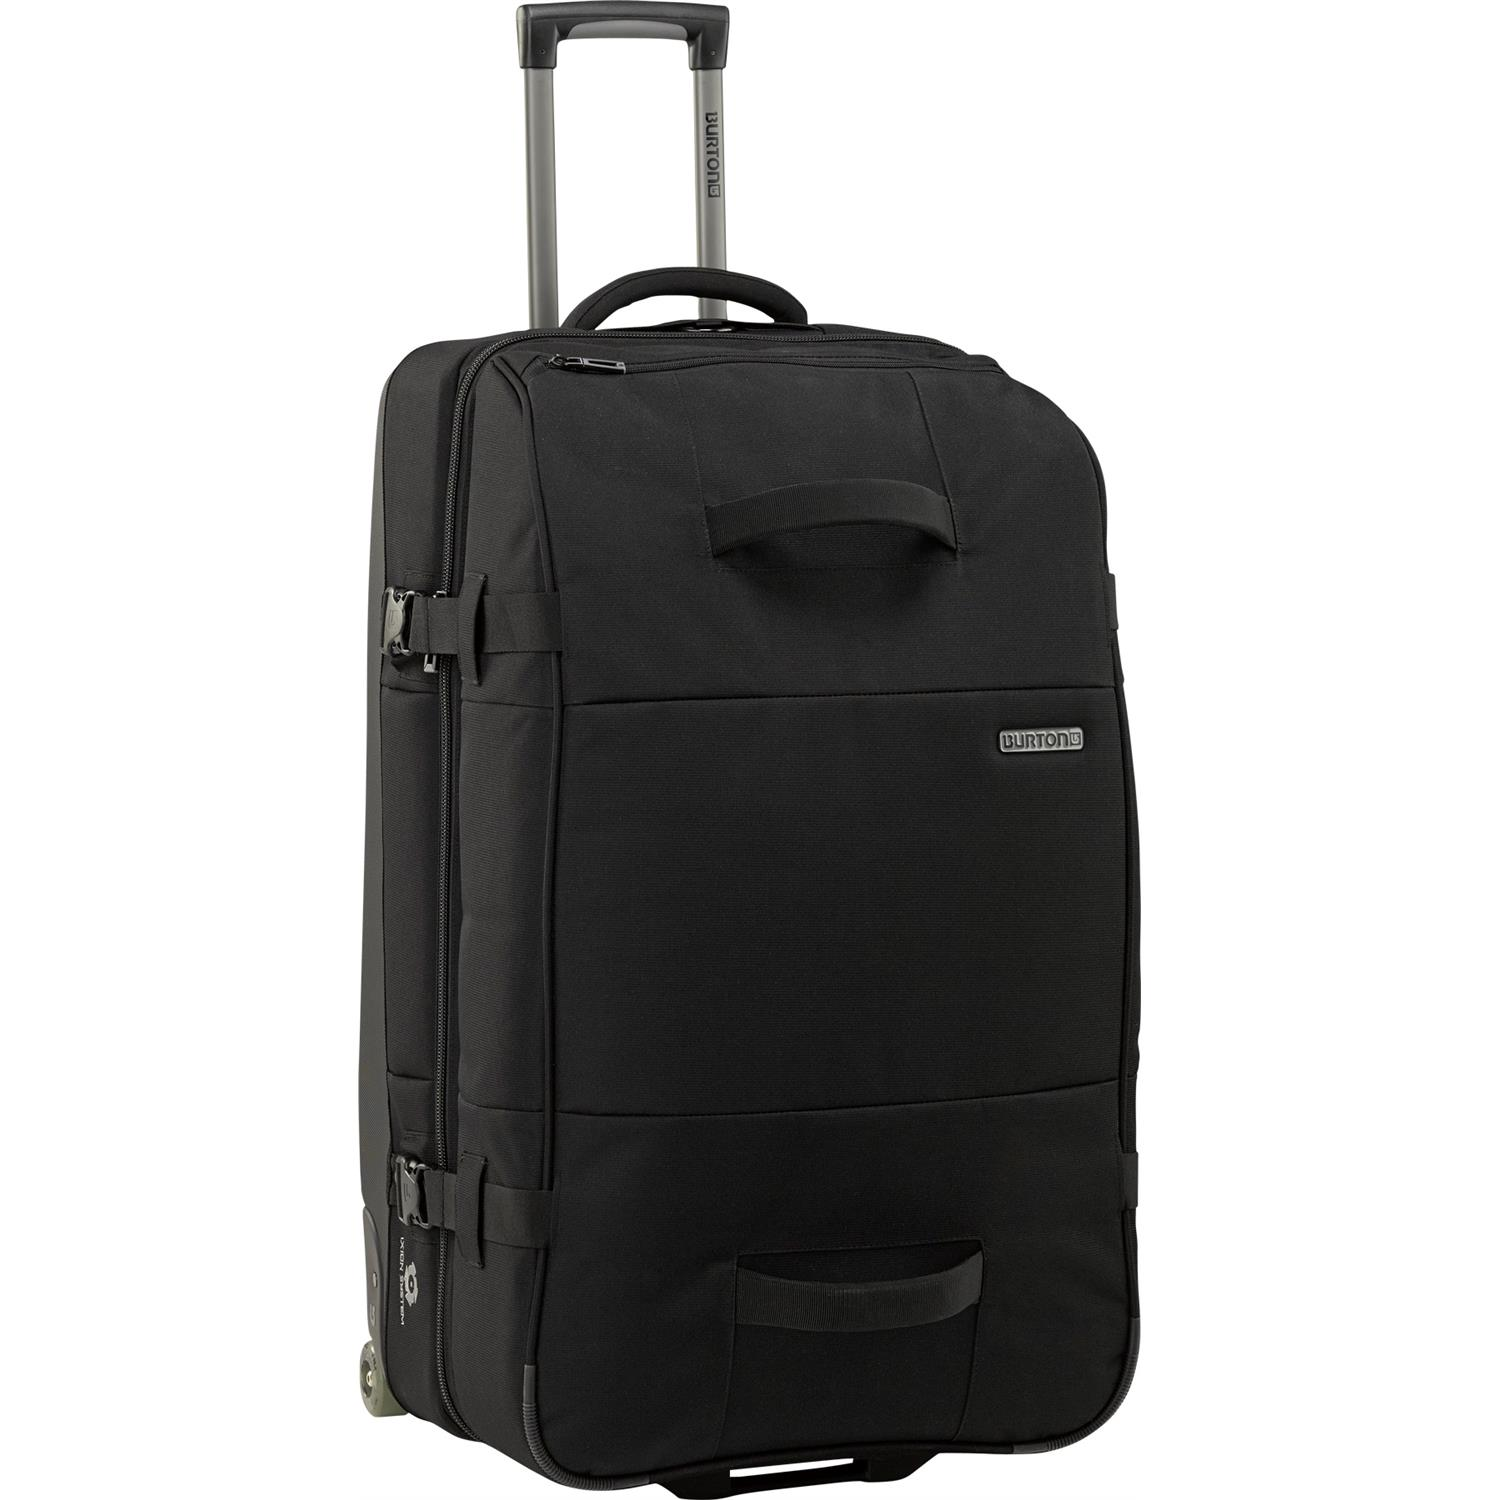 Burton Wheelie Sub Bag Evo